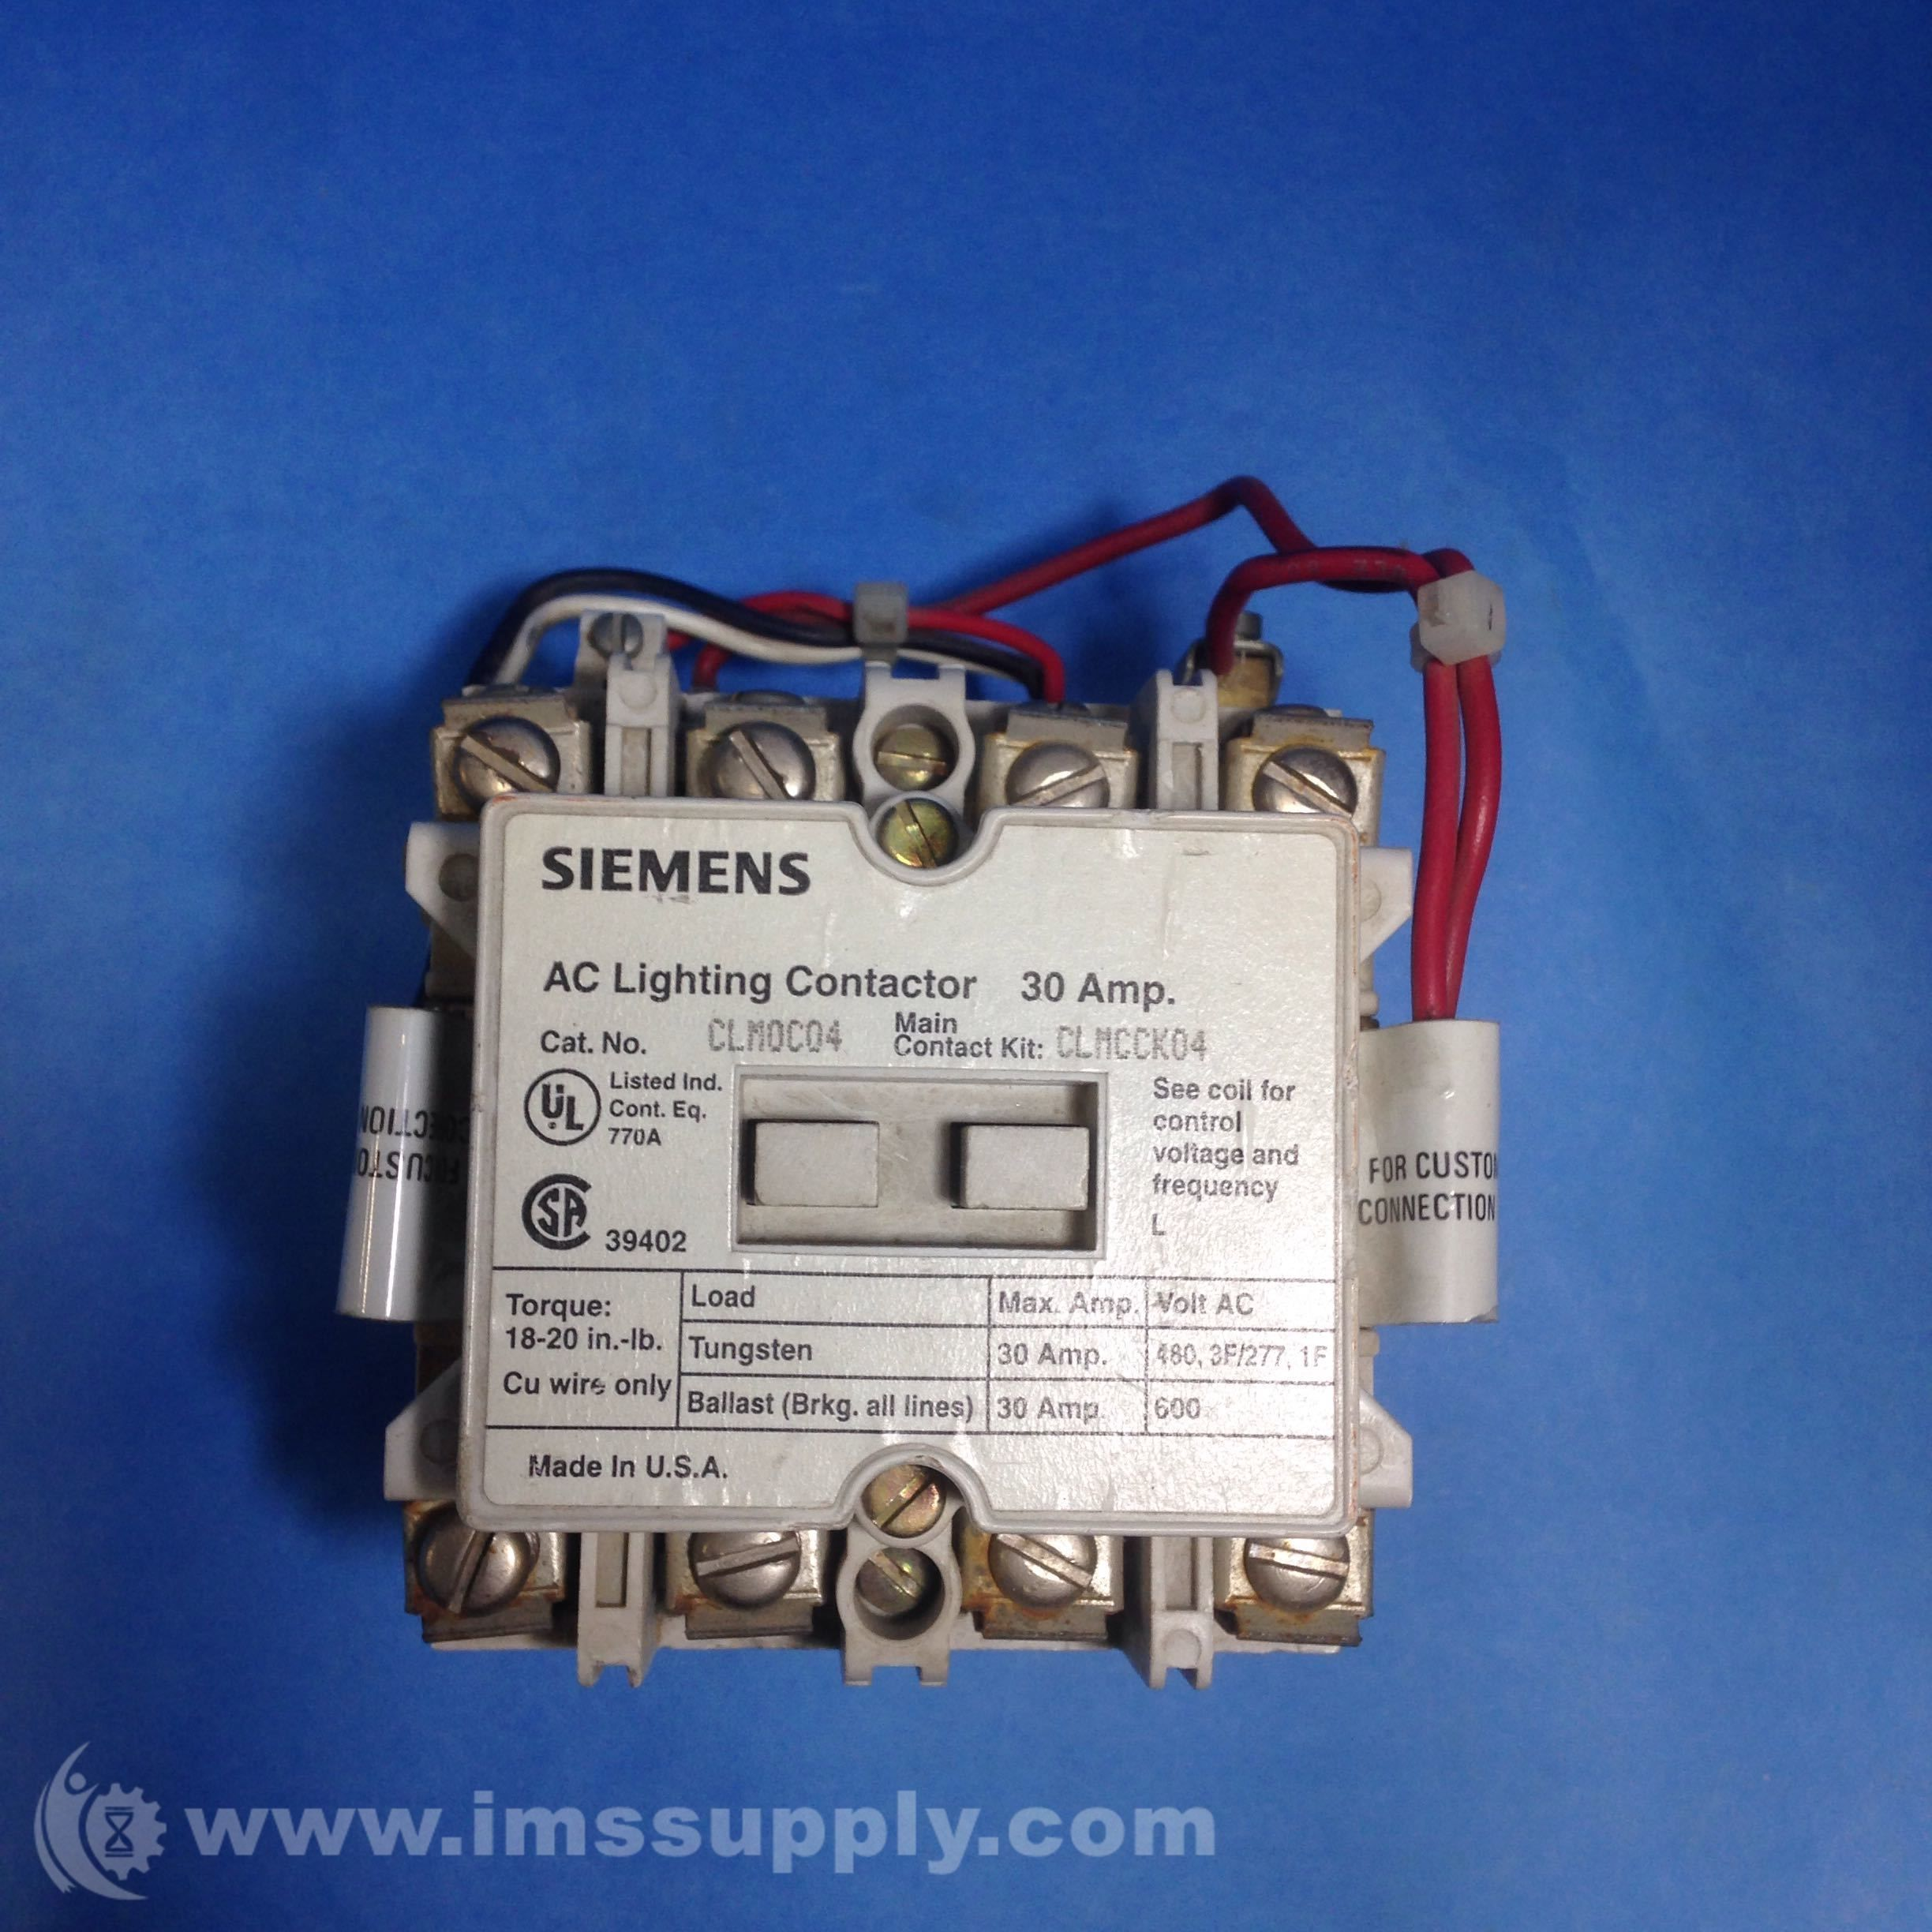 Siemens Clm0c04 Electrical Contact Kit Siemens Kit Electricity